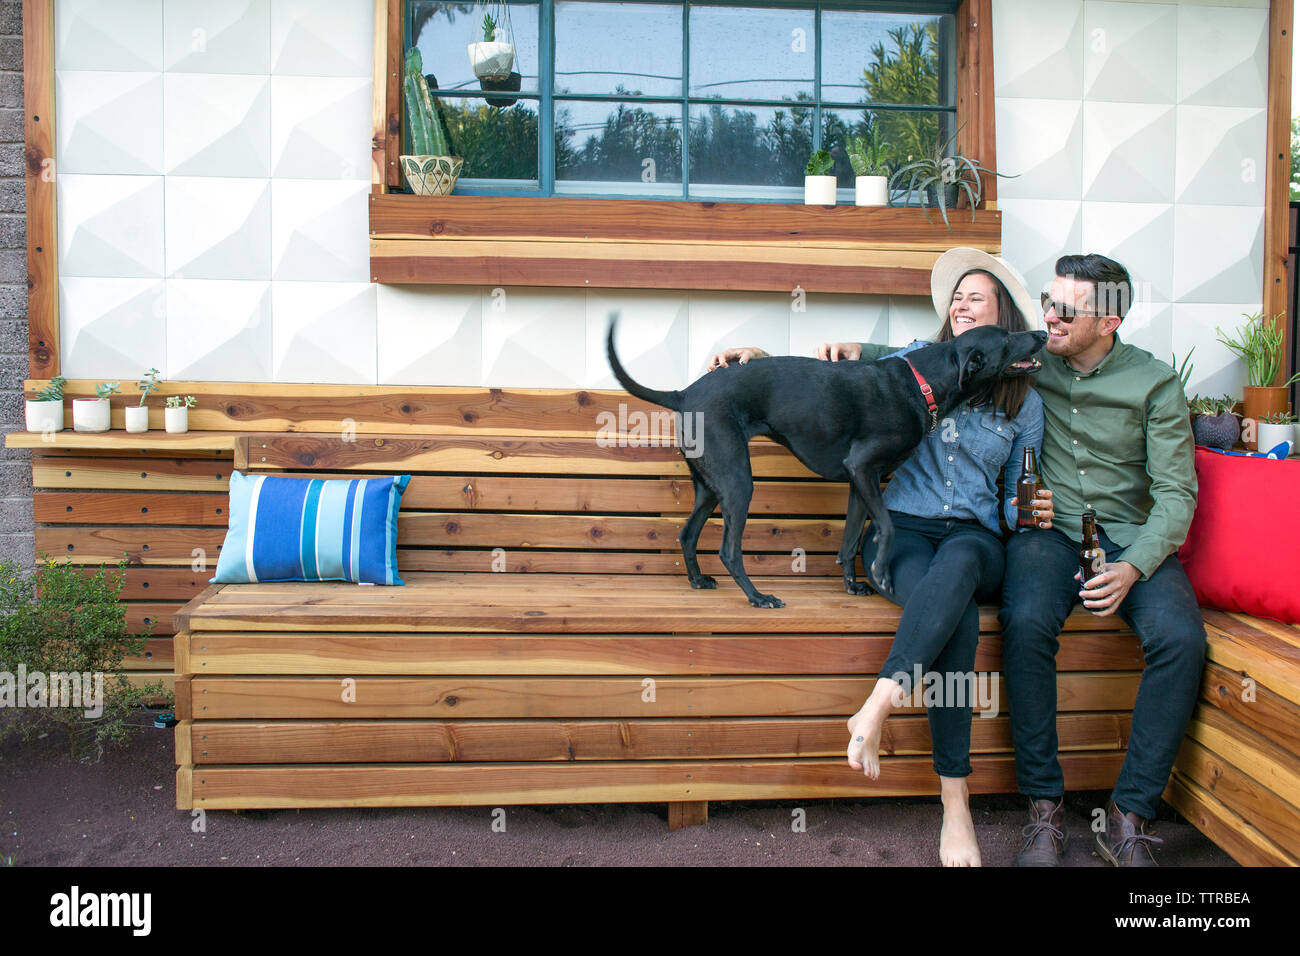 Happy couple holding beer bottles playing with dog while sitting in backyard - Stock Image